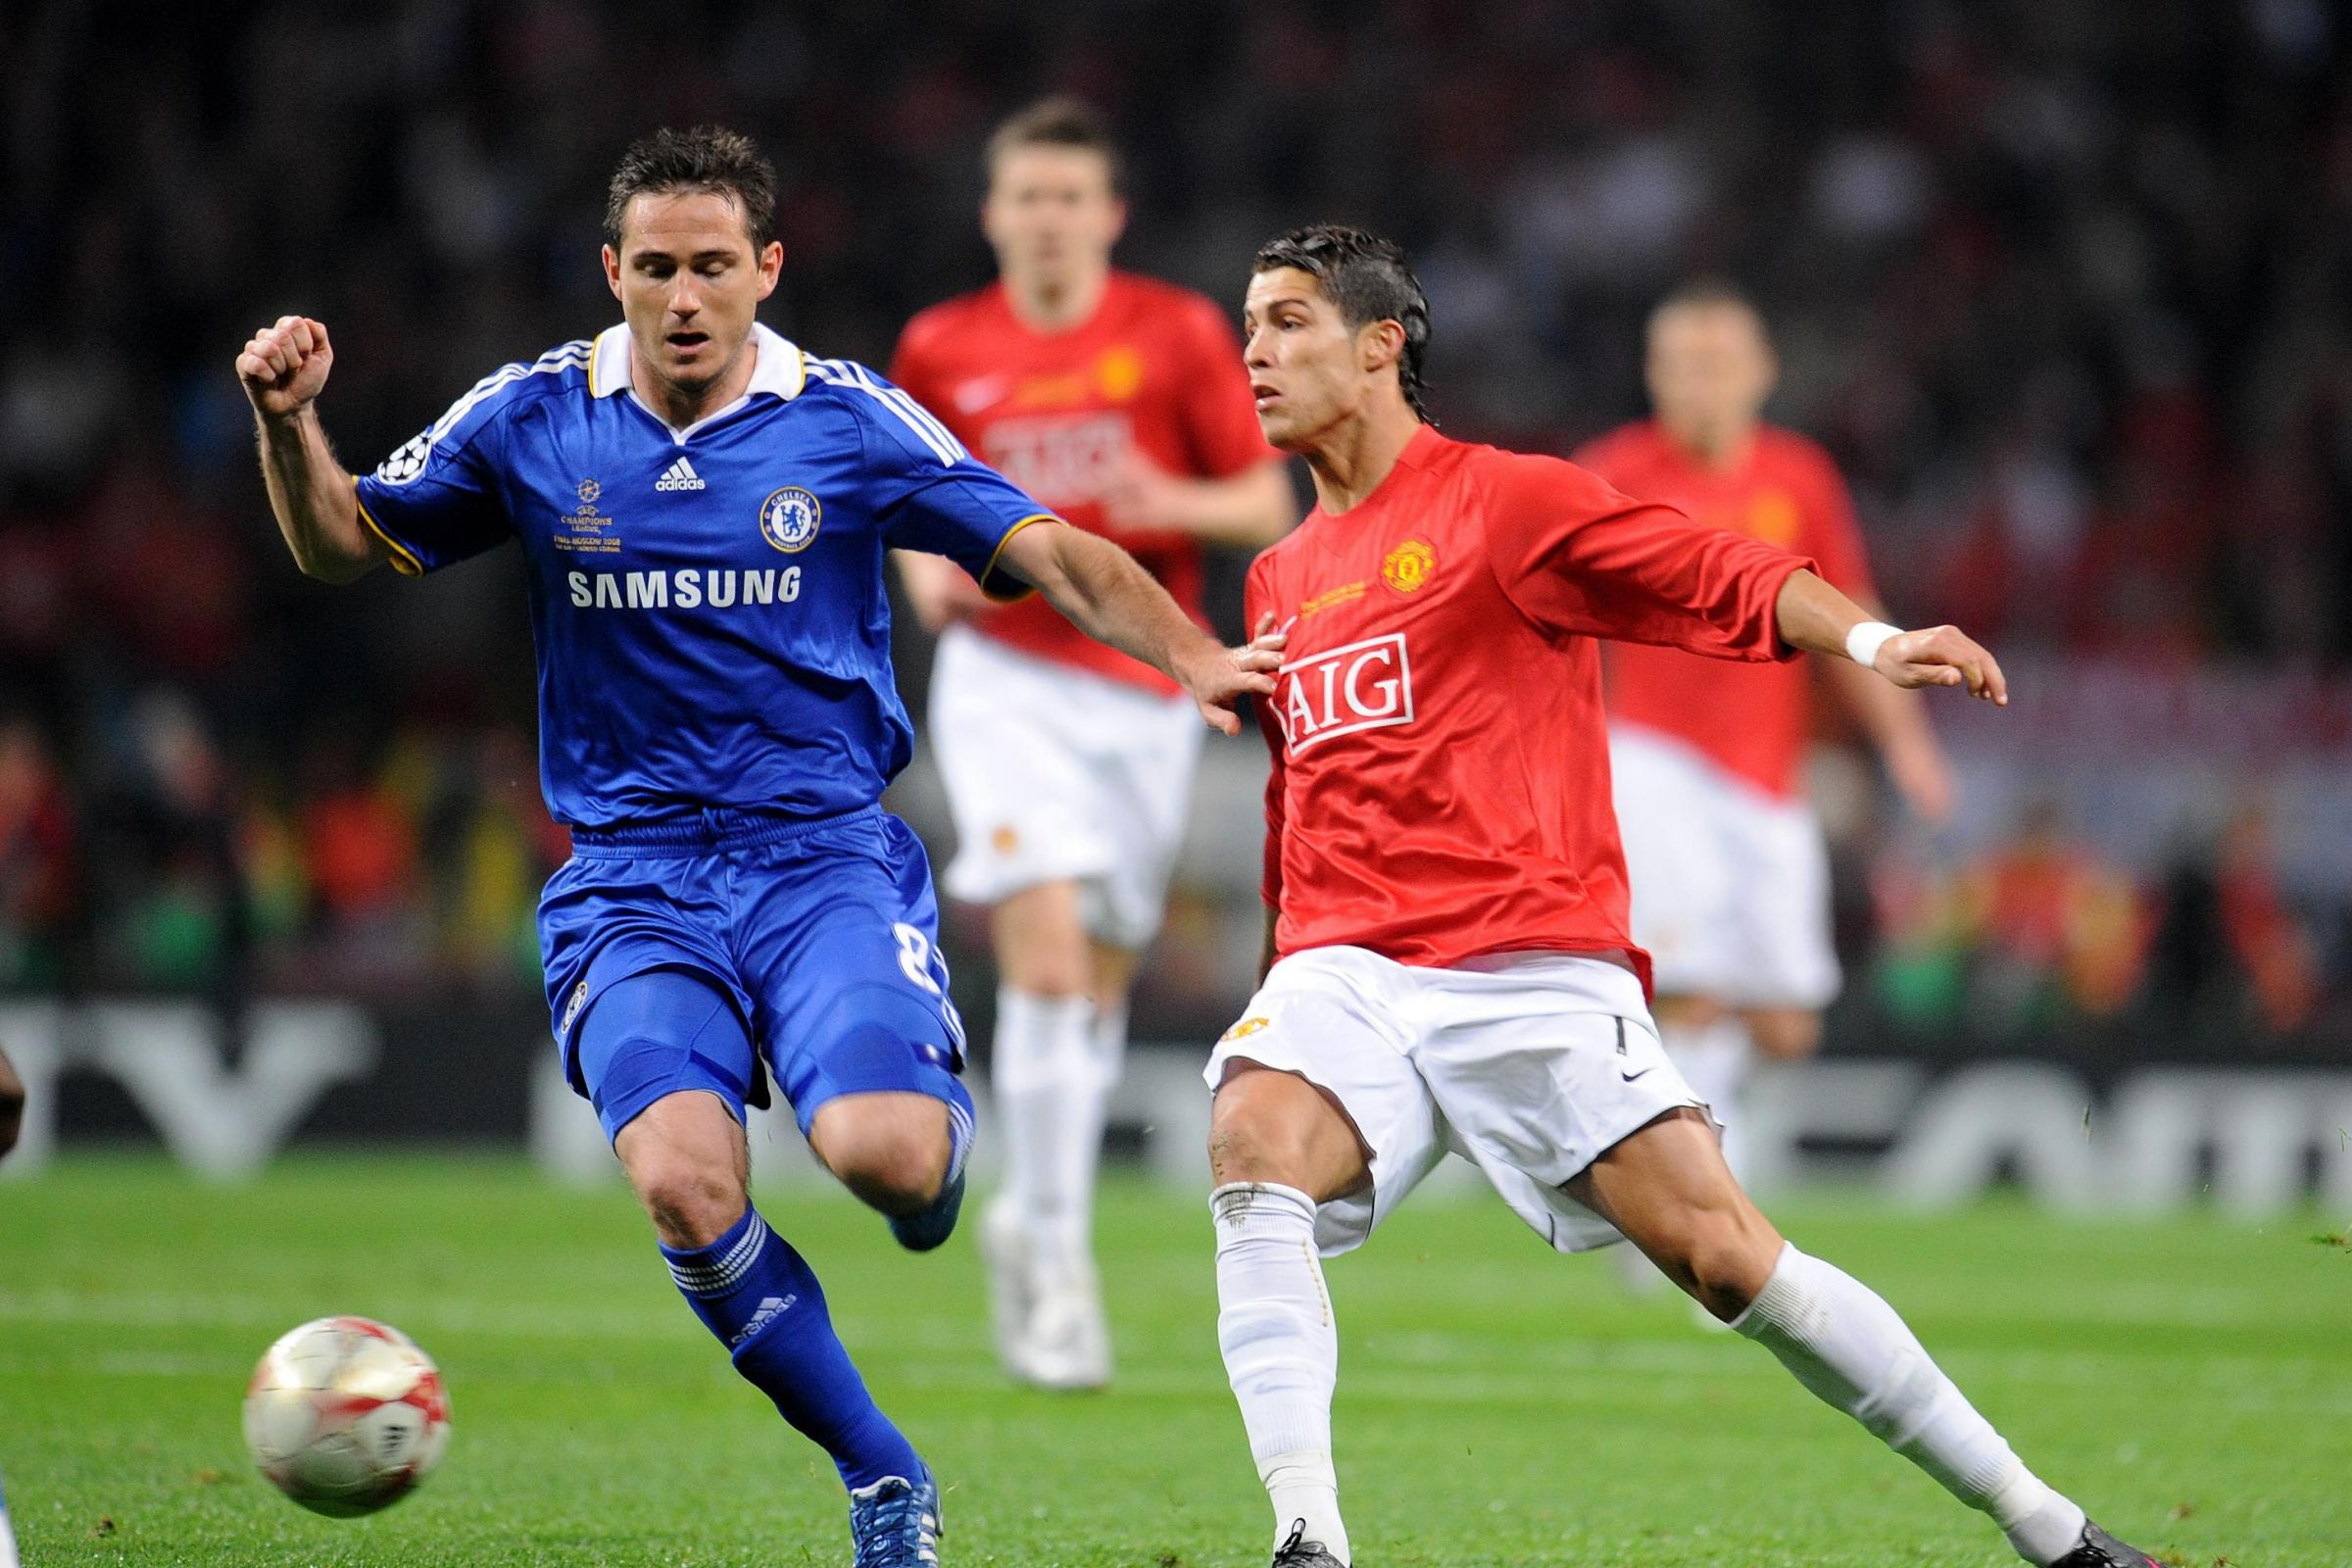 Chelsea's Frank Lampard battles with Manchester United's Cristiano Ronaldo in Moscow